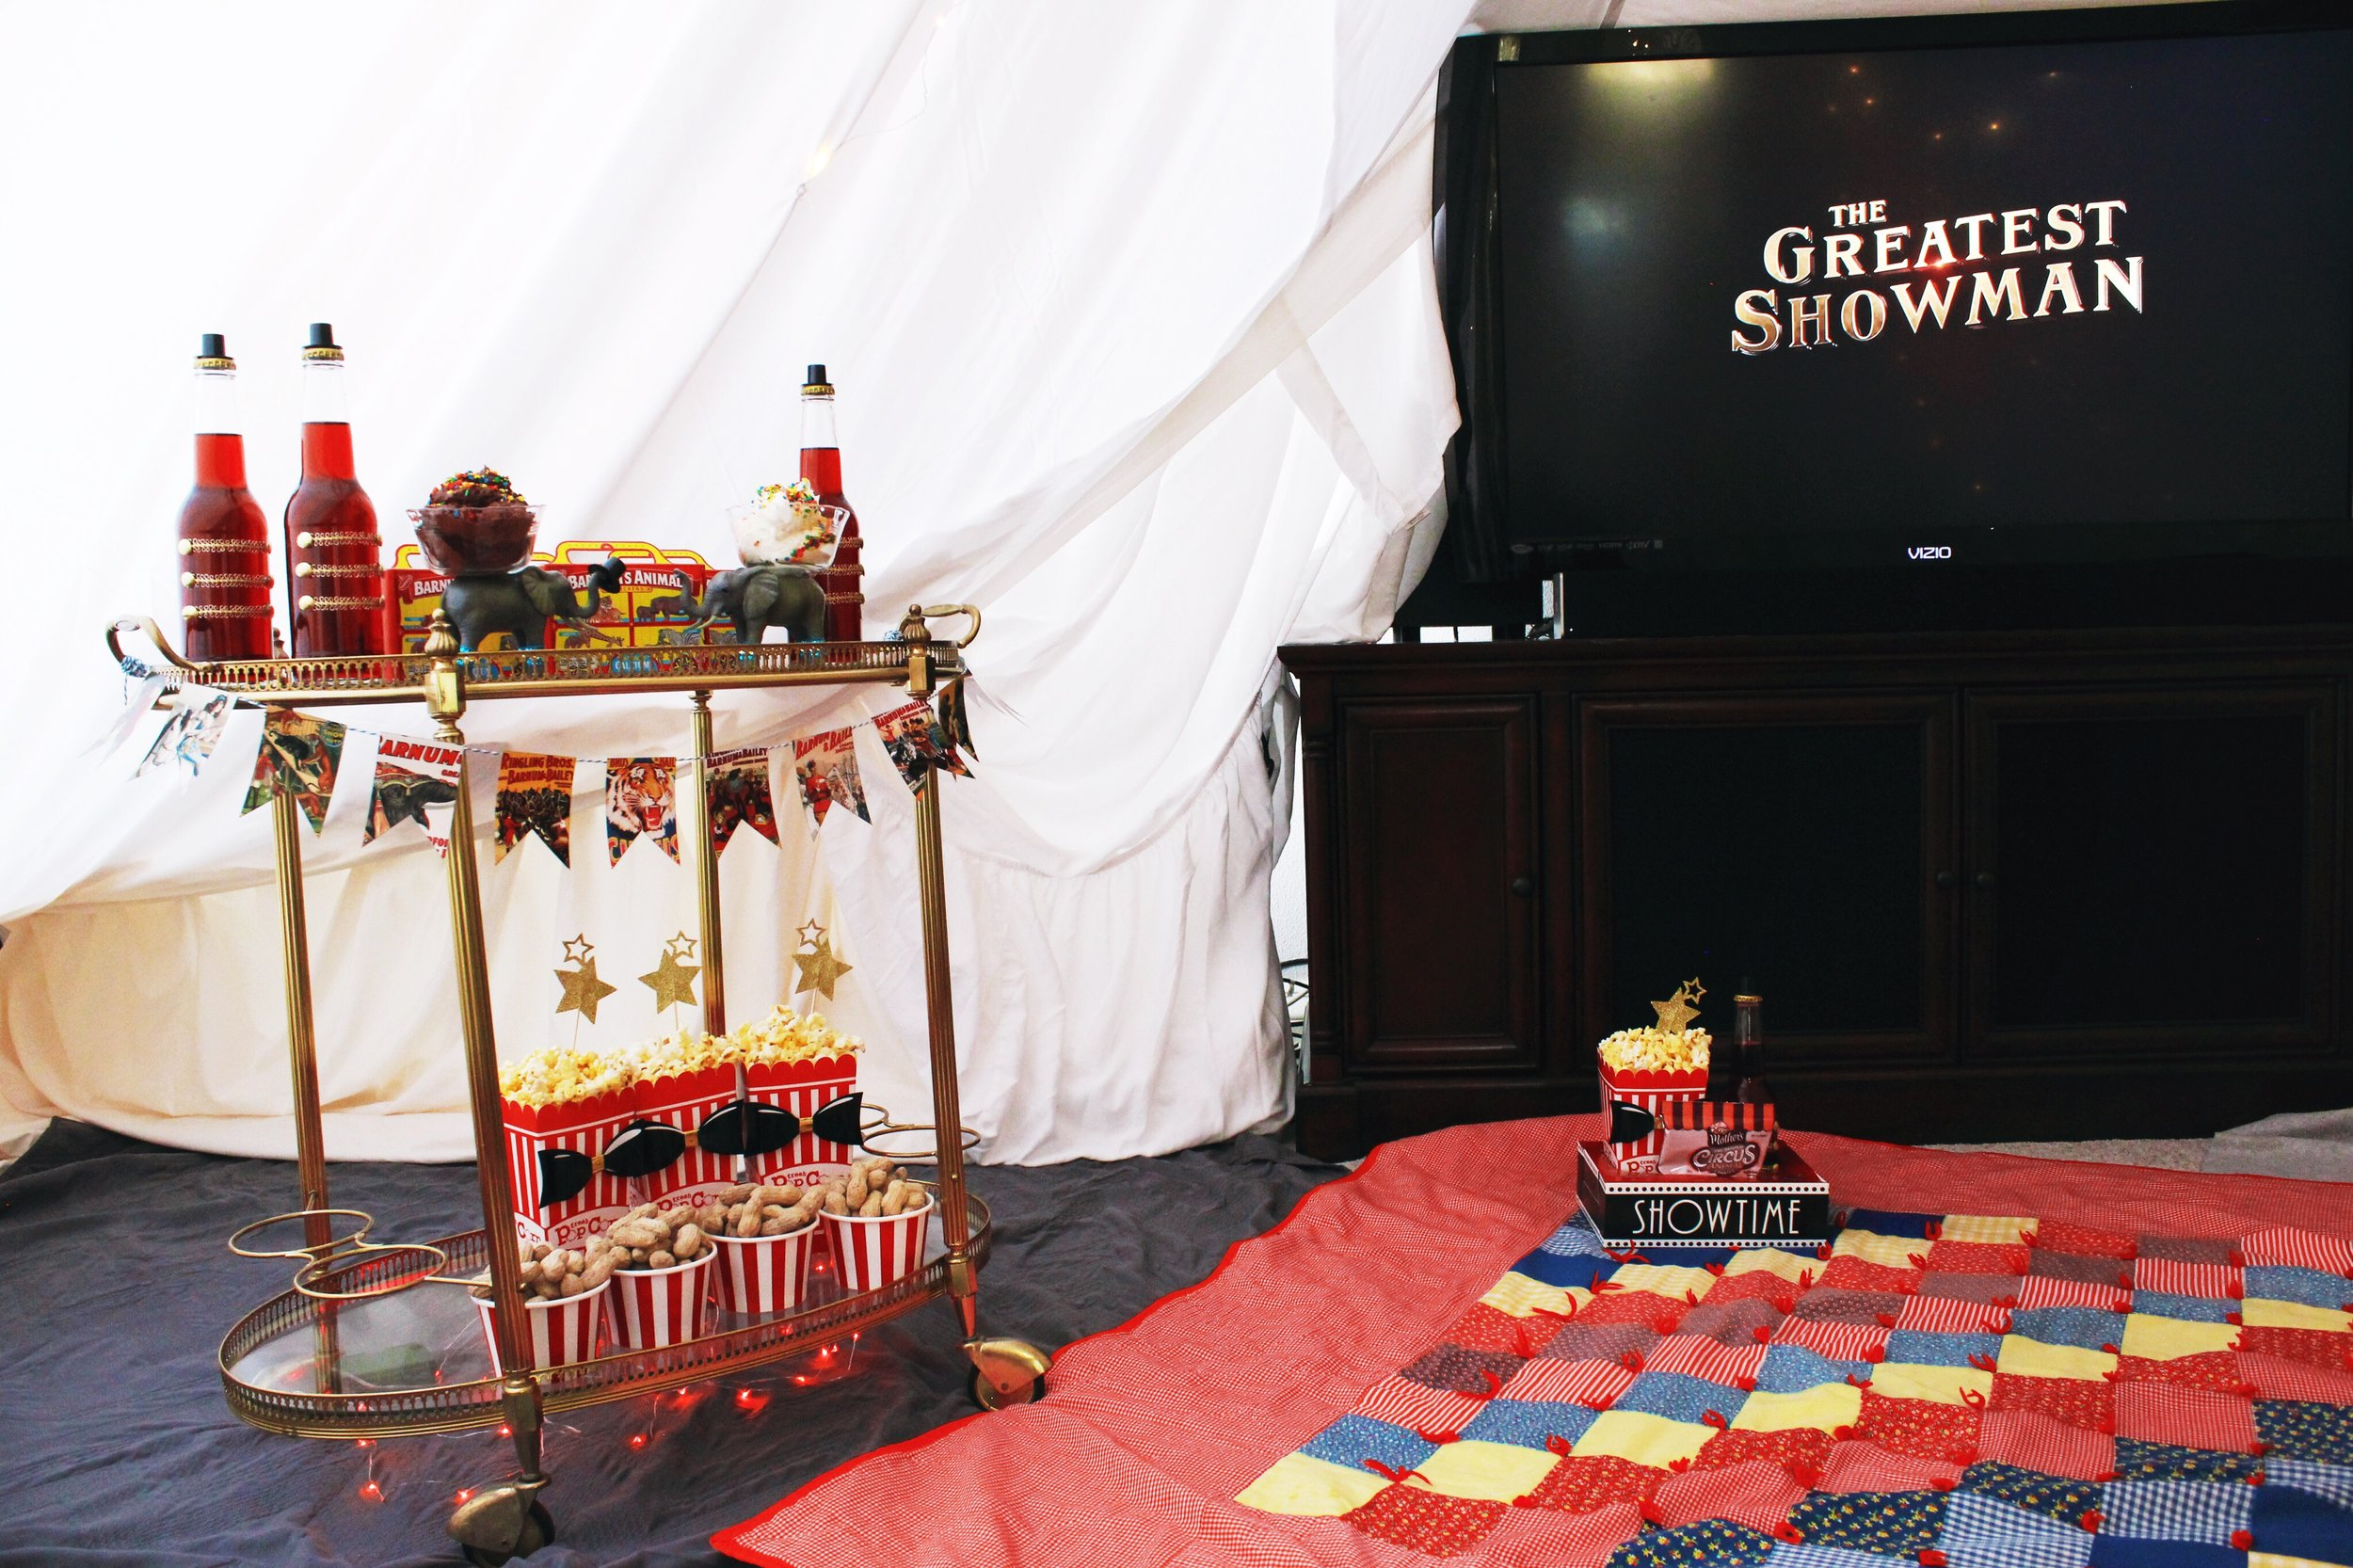 The Greatest Showman Movie Party_Circus Tent_Bar Cart_Food Drink Ideas.JPG